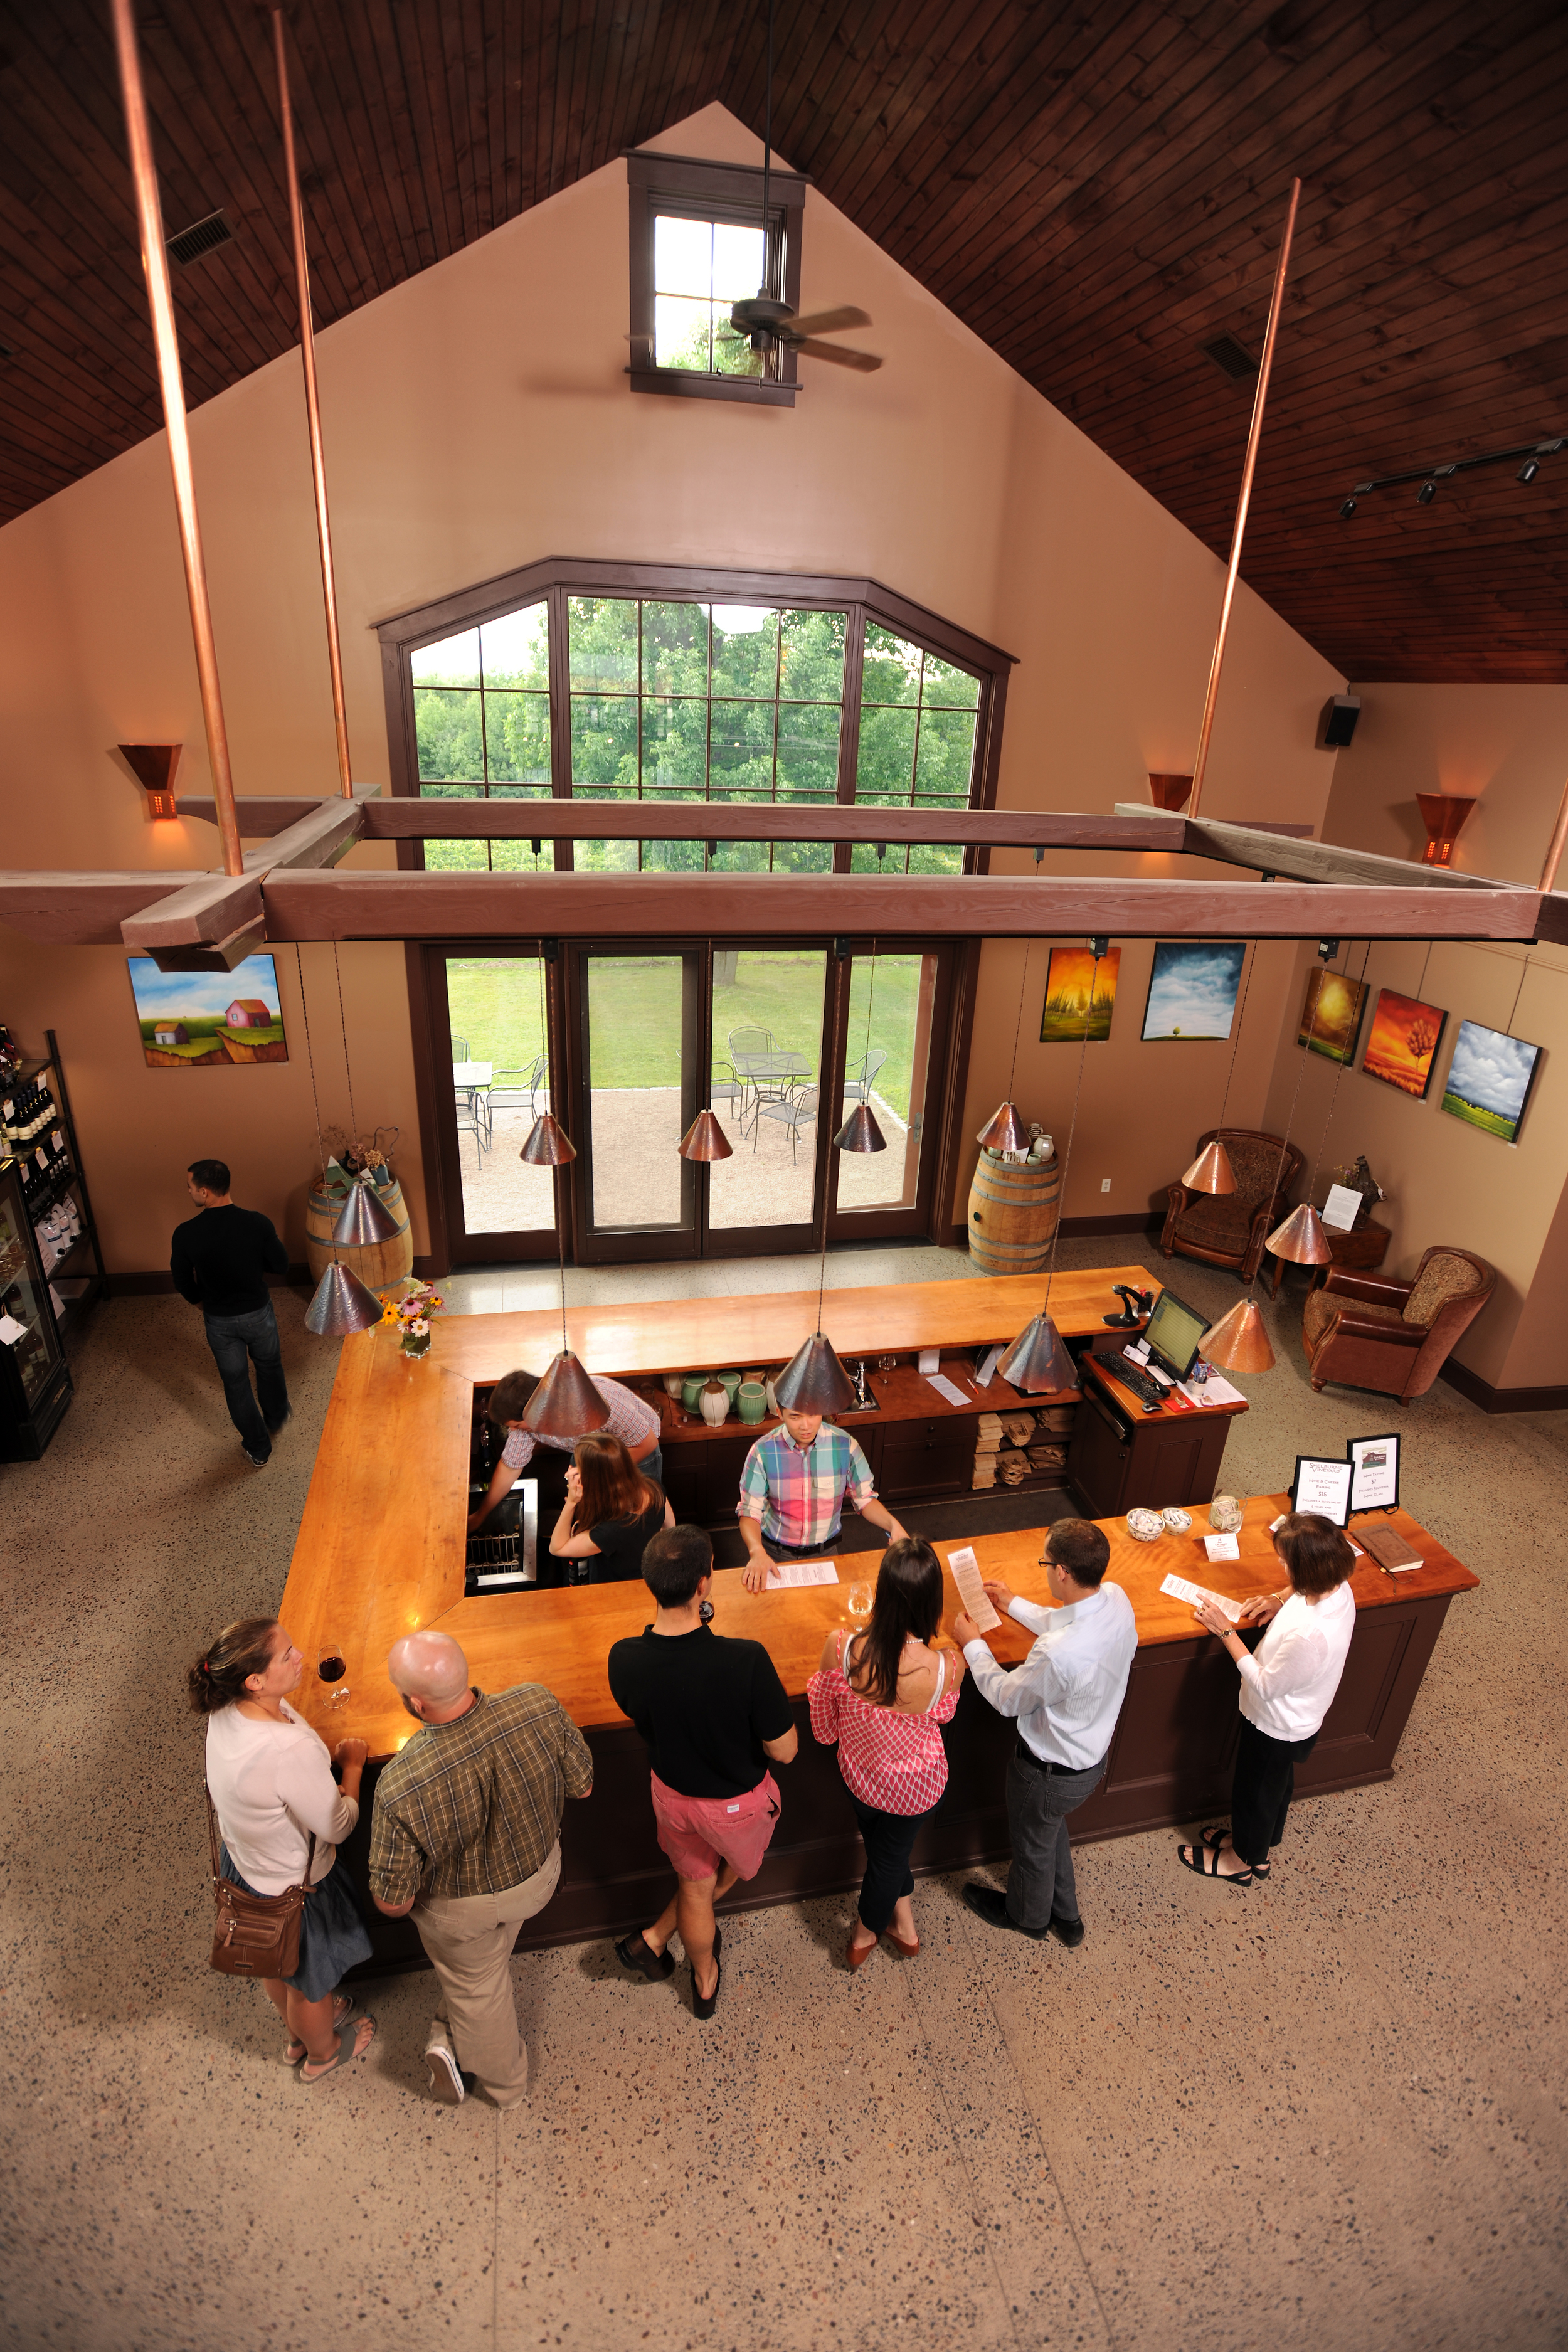 View of Tasting room bar from overhead